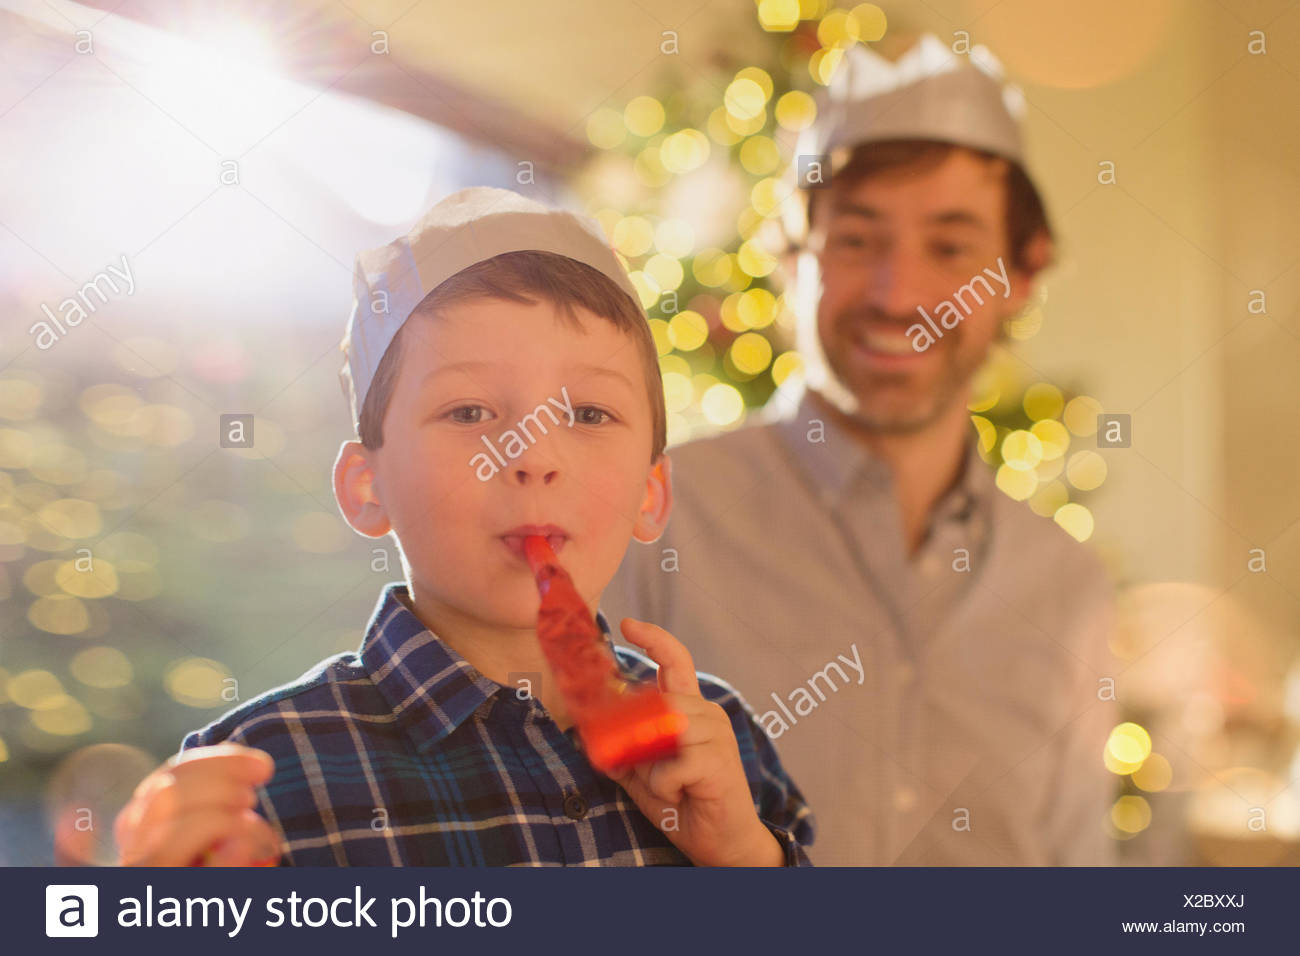 736627bbd7a36 Portrait boy wearing Christmas paper crown blowing party favor - Stock Image